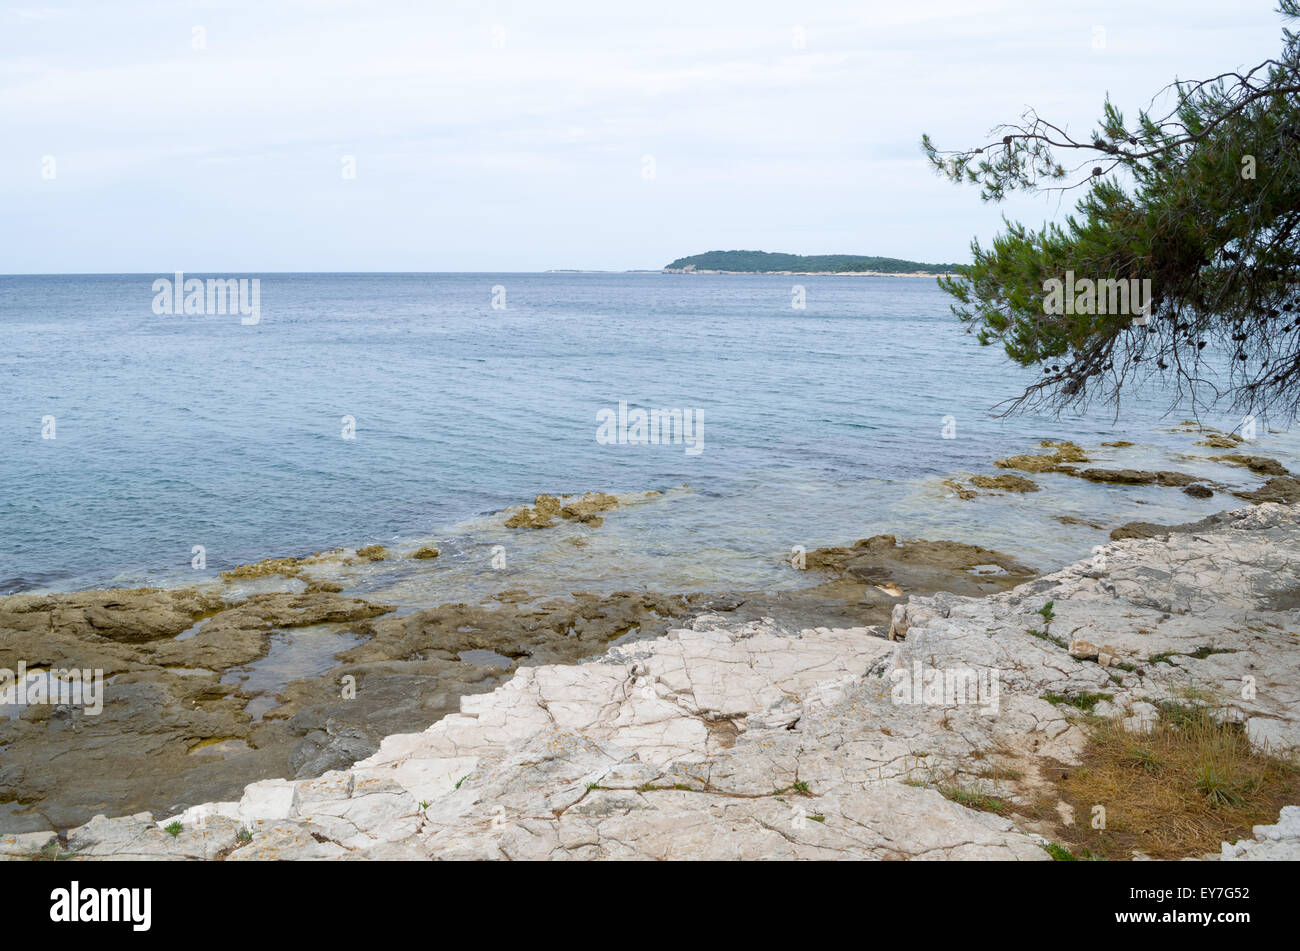 Rocky Coast with Pine and Distant Land on the Horizon - Stock Image